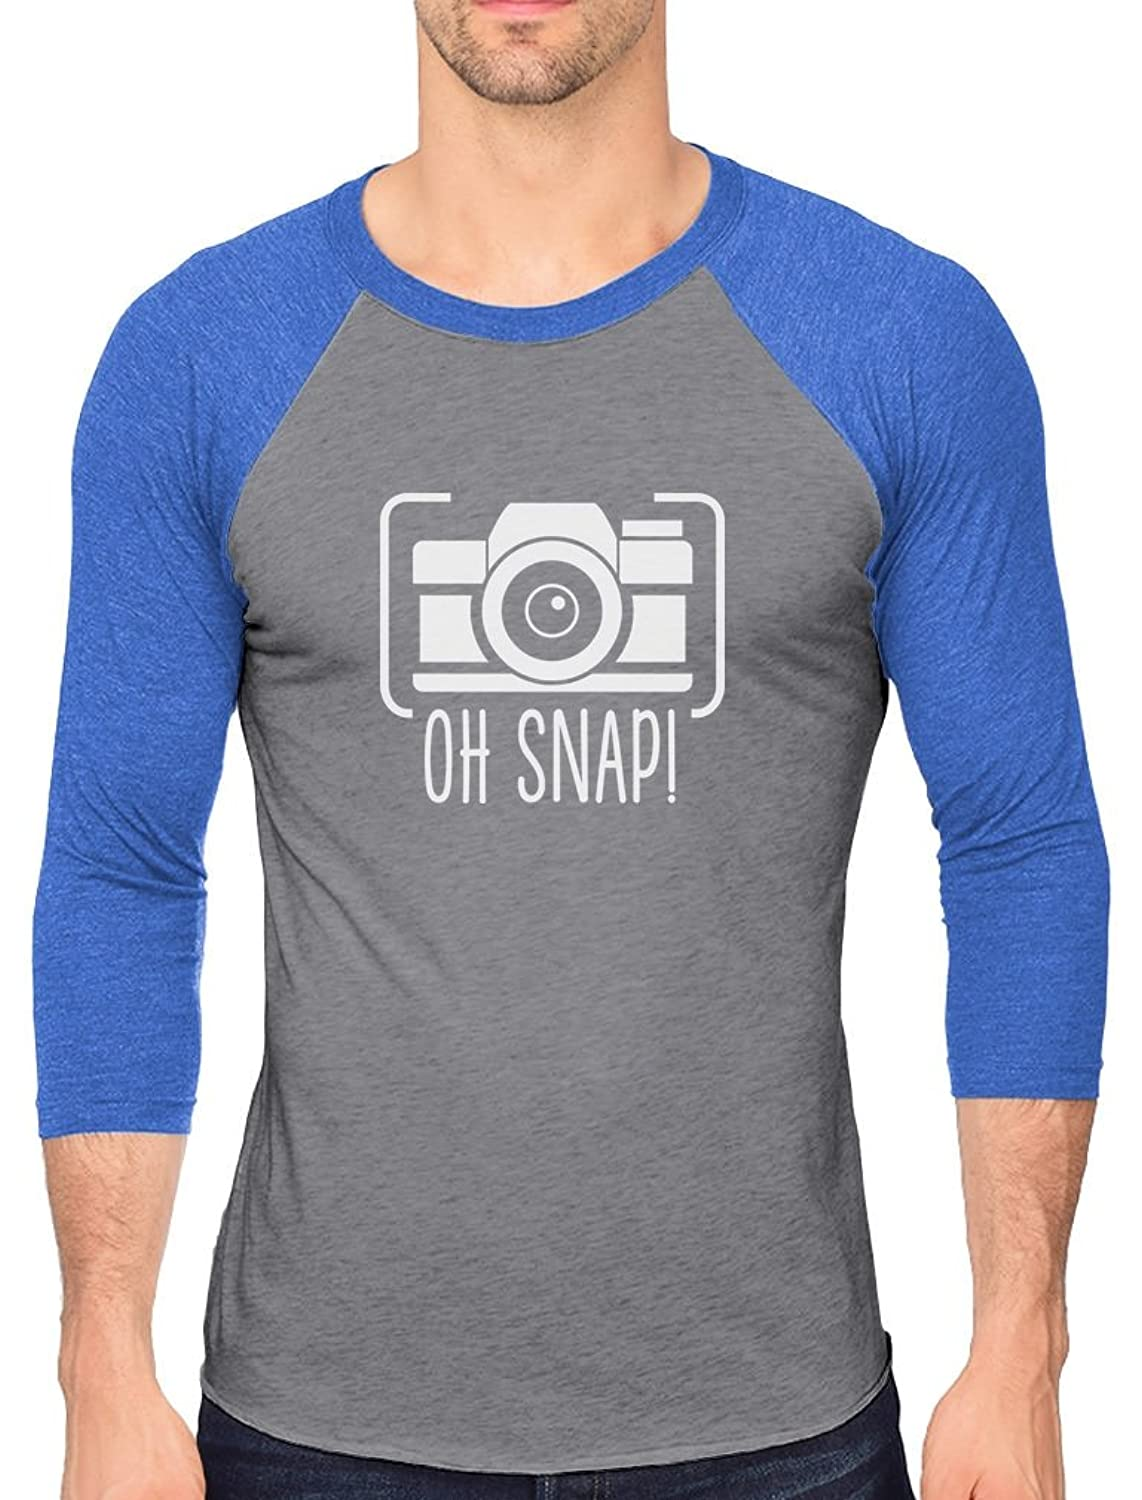 Oh Snap! - Gift for Photographer Funny 3/4 Sleeve Baseball Jersey Shirt for sale